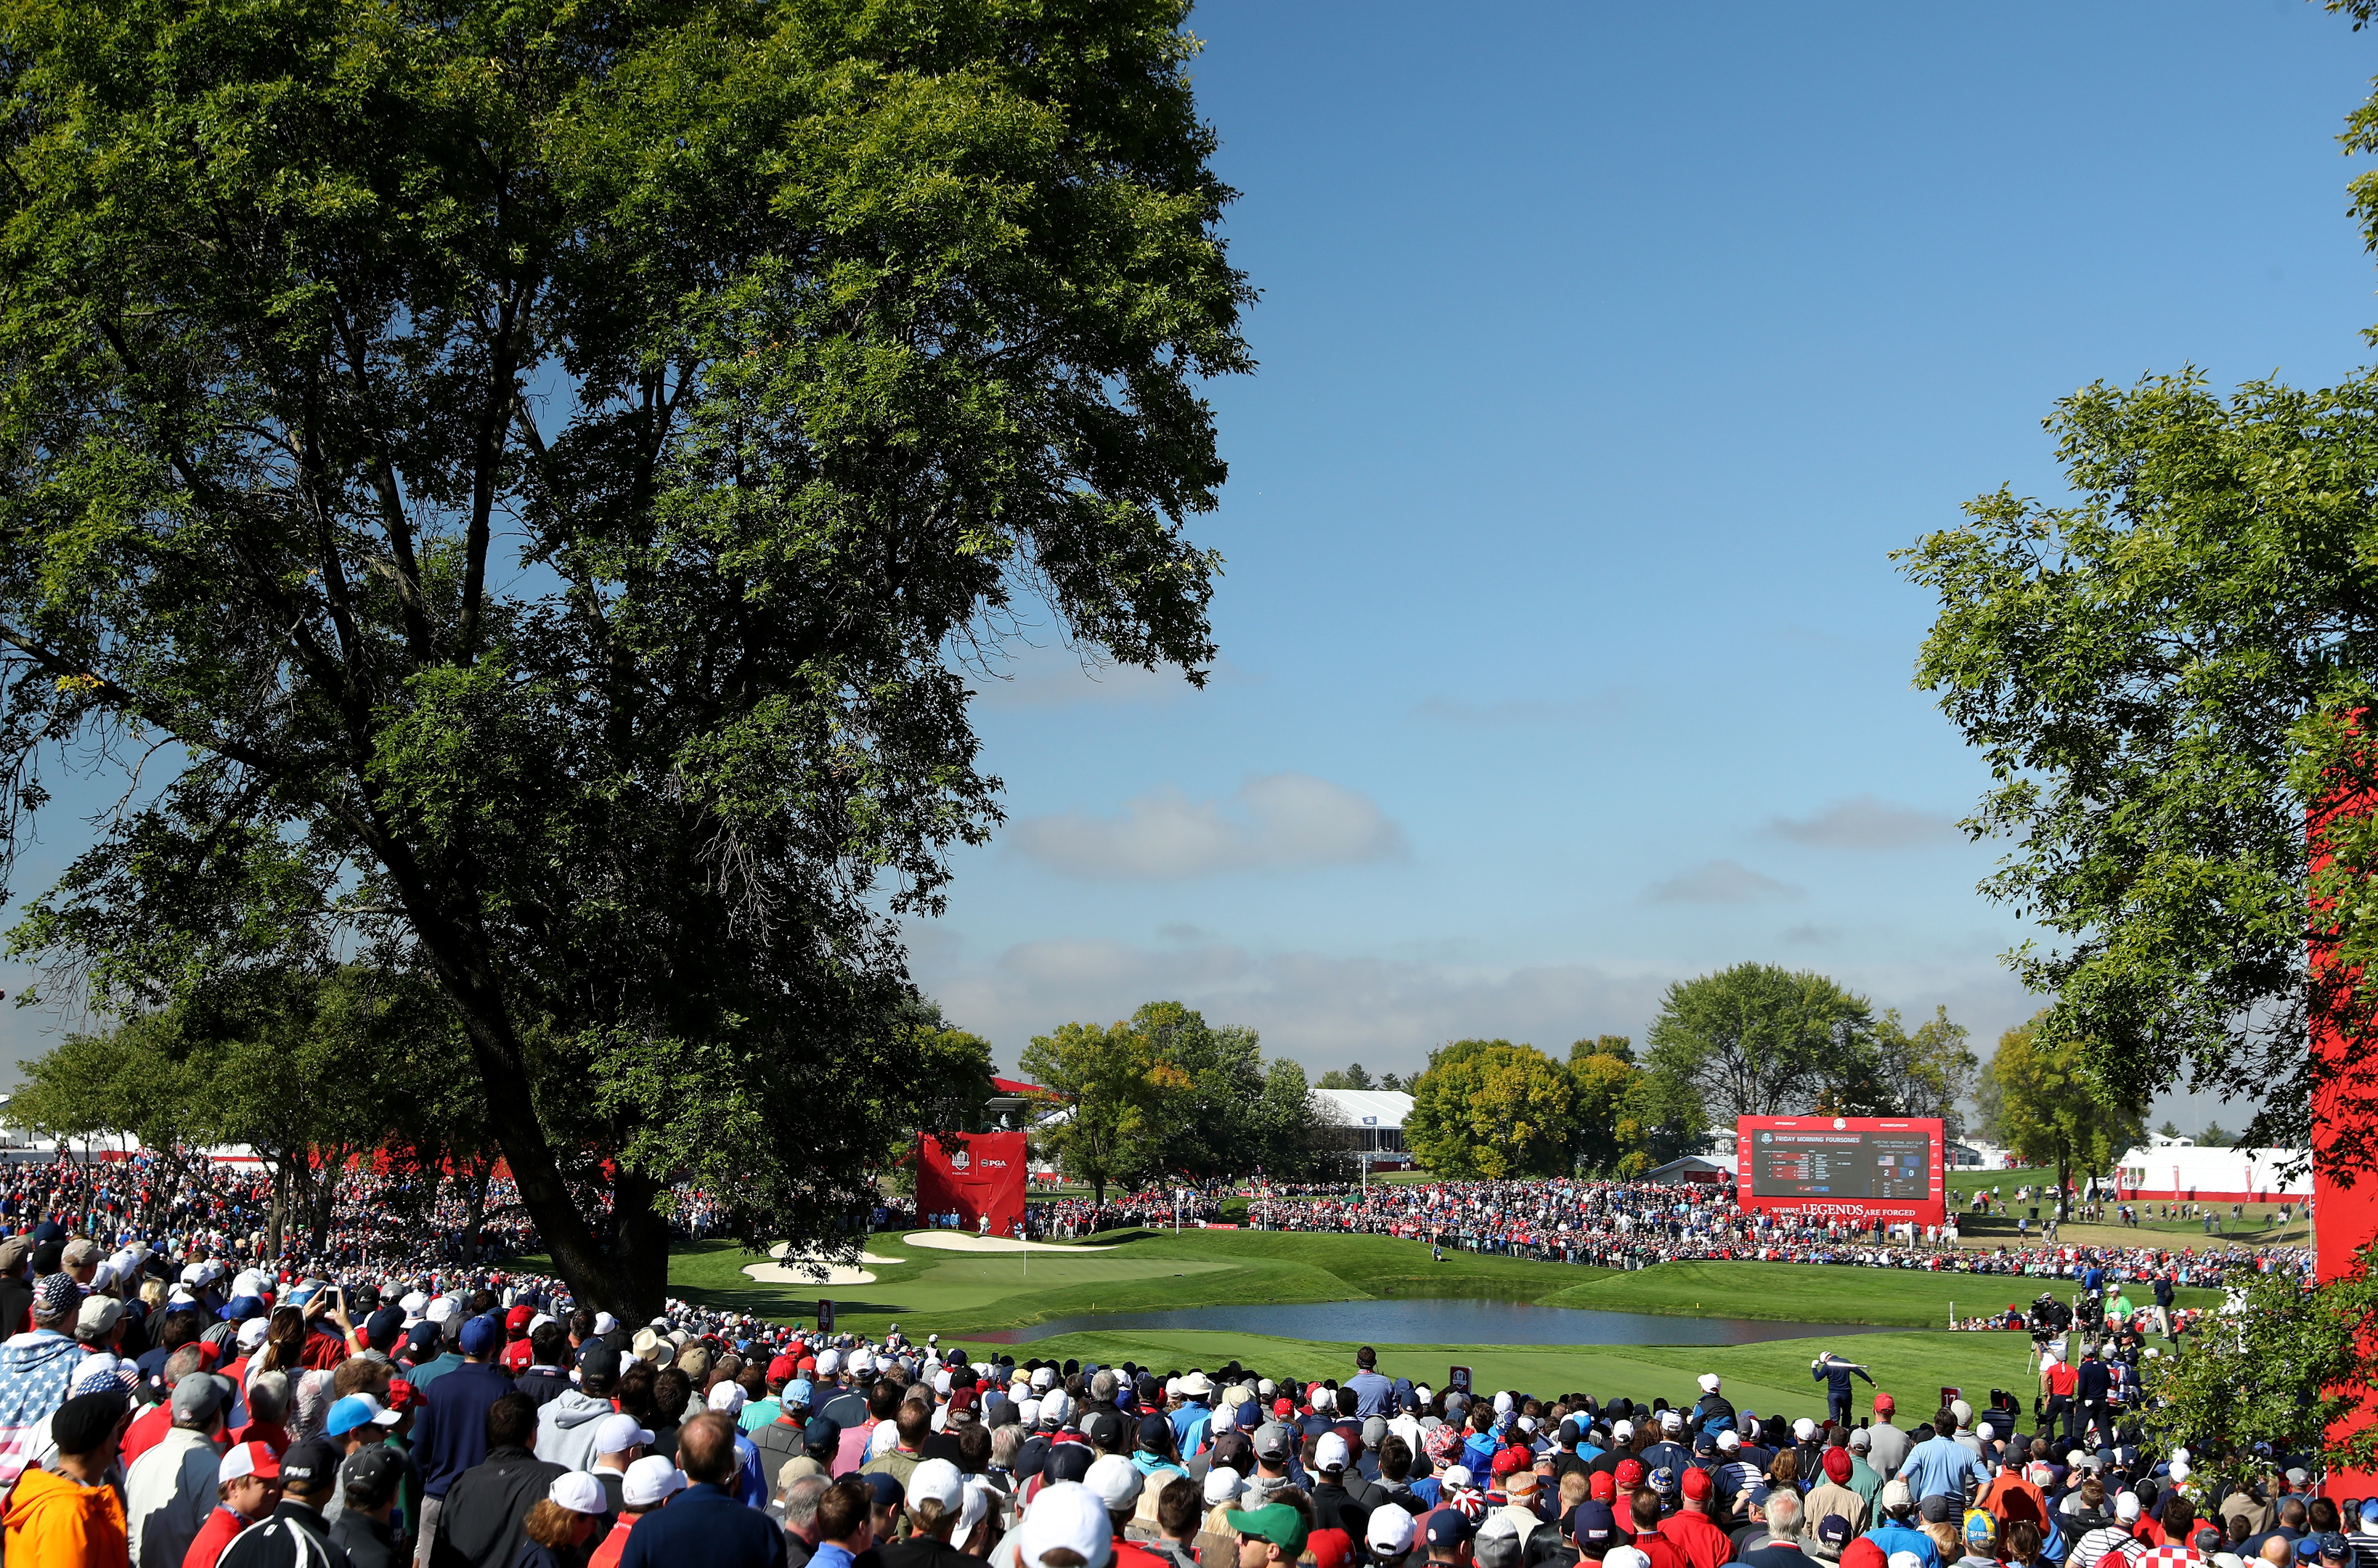 Ryder Cup atmosphere at electric high at Hazeltine